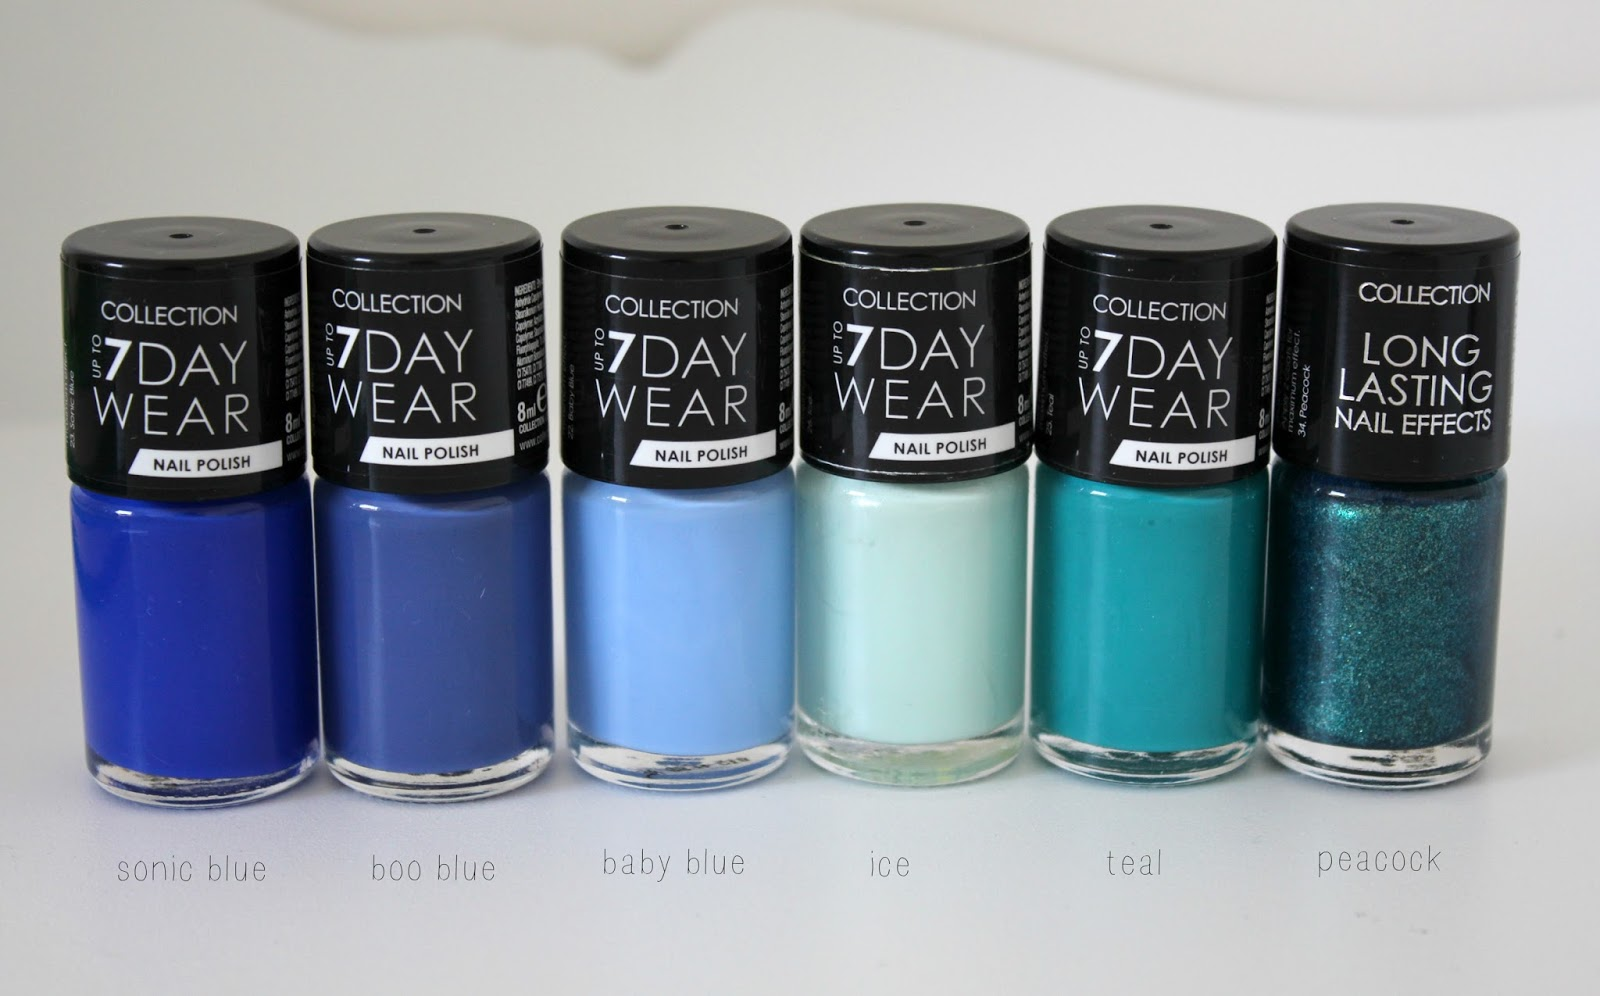 Collection 7 Day Wear Nail Polishes